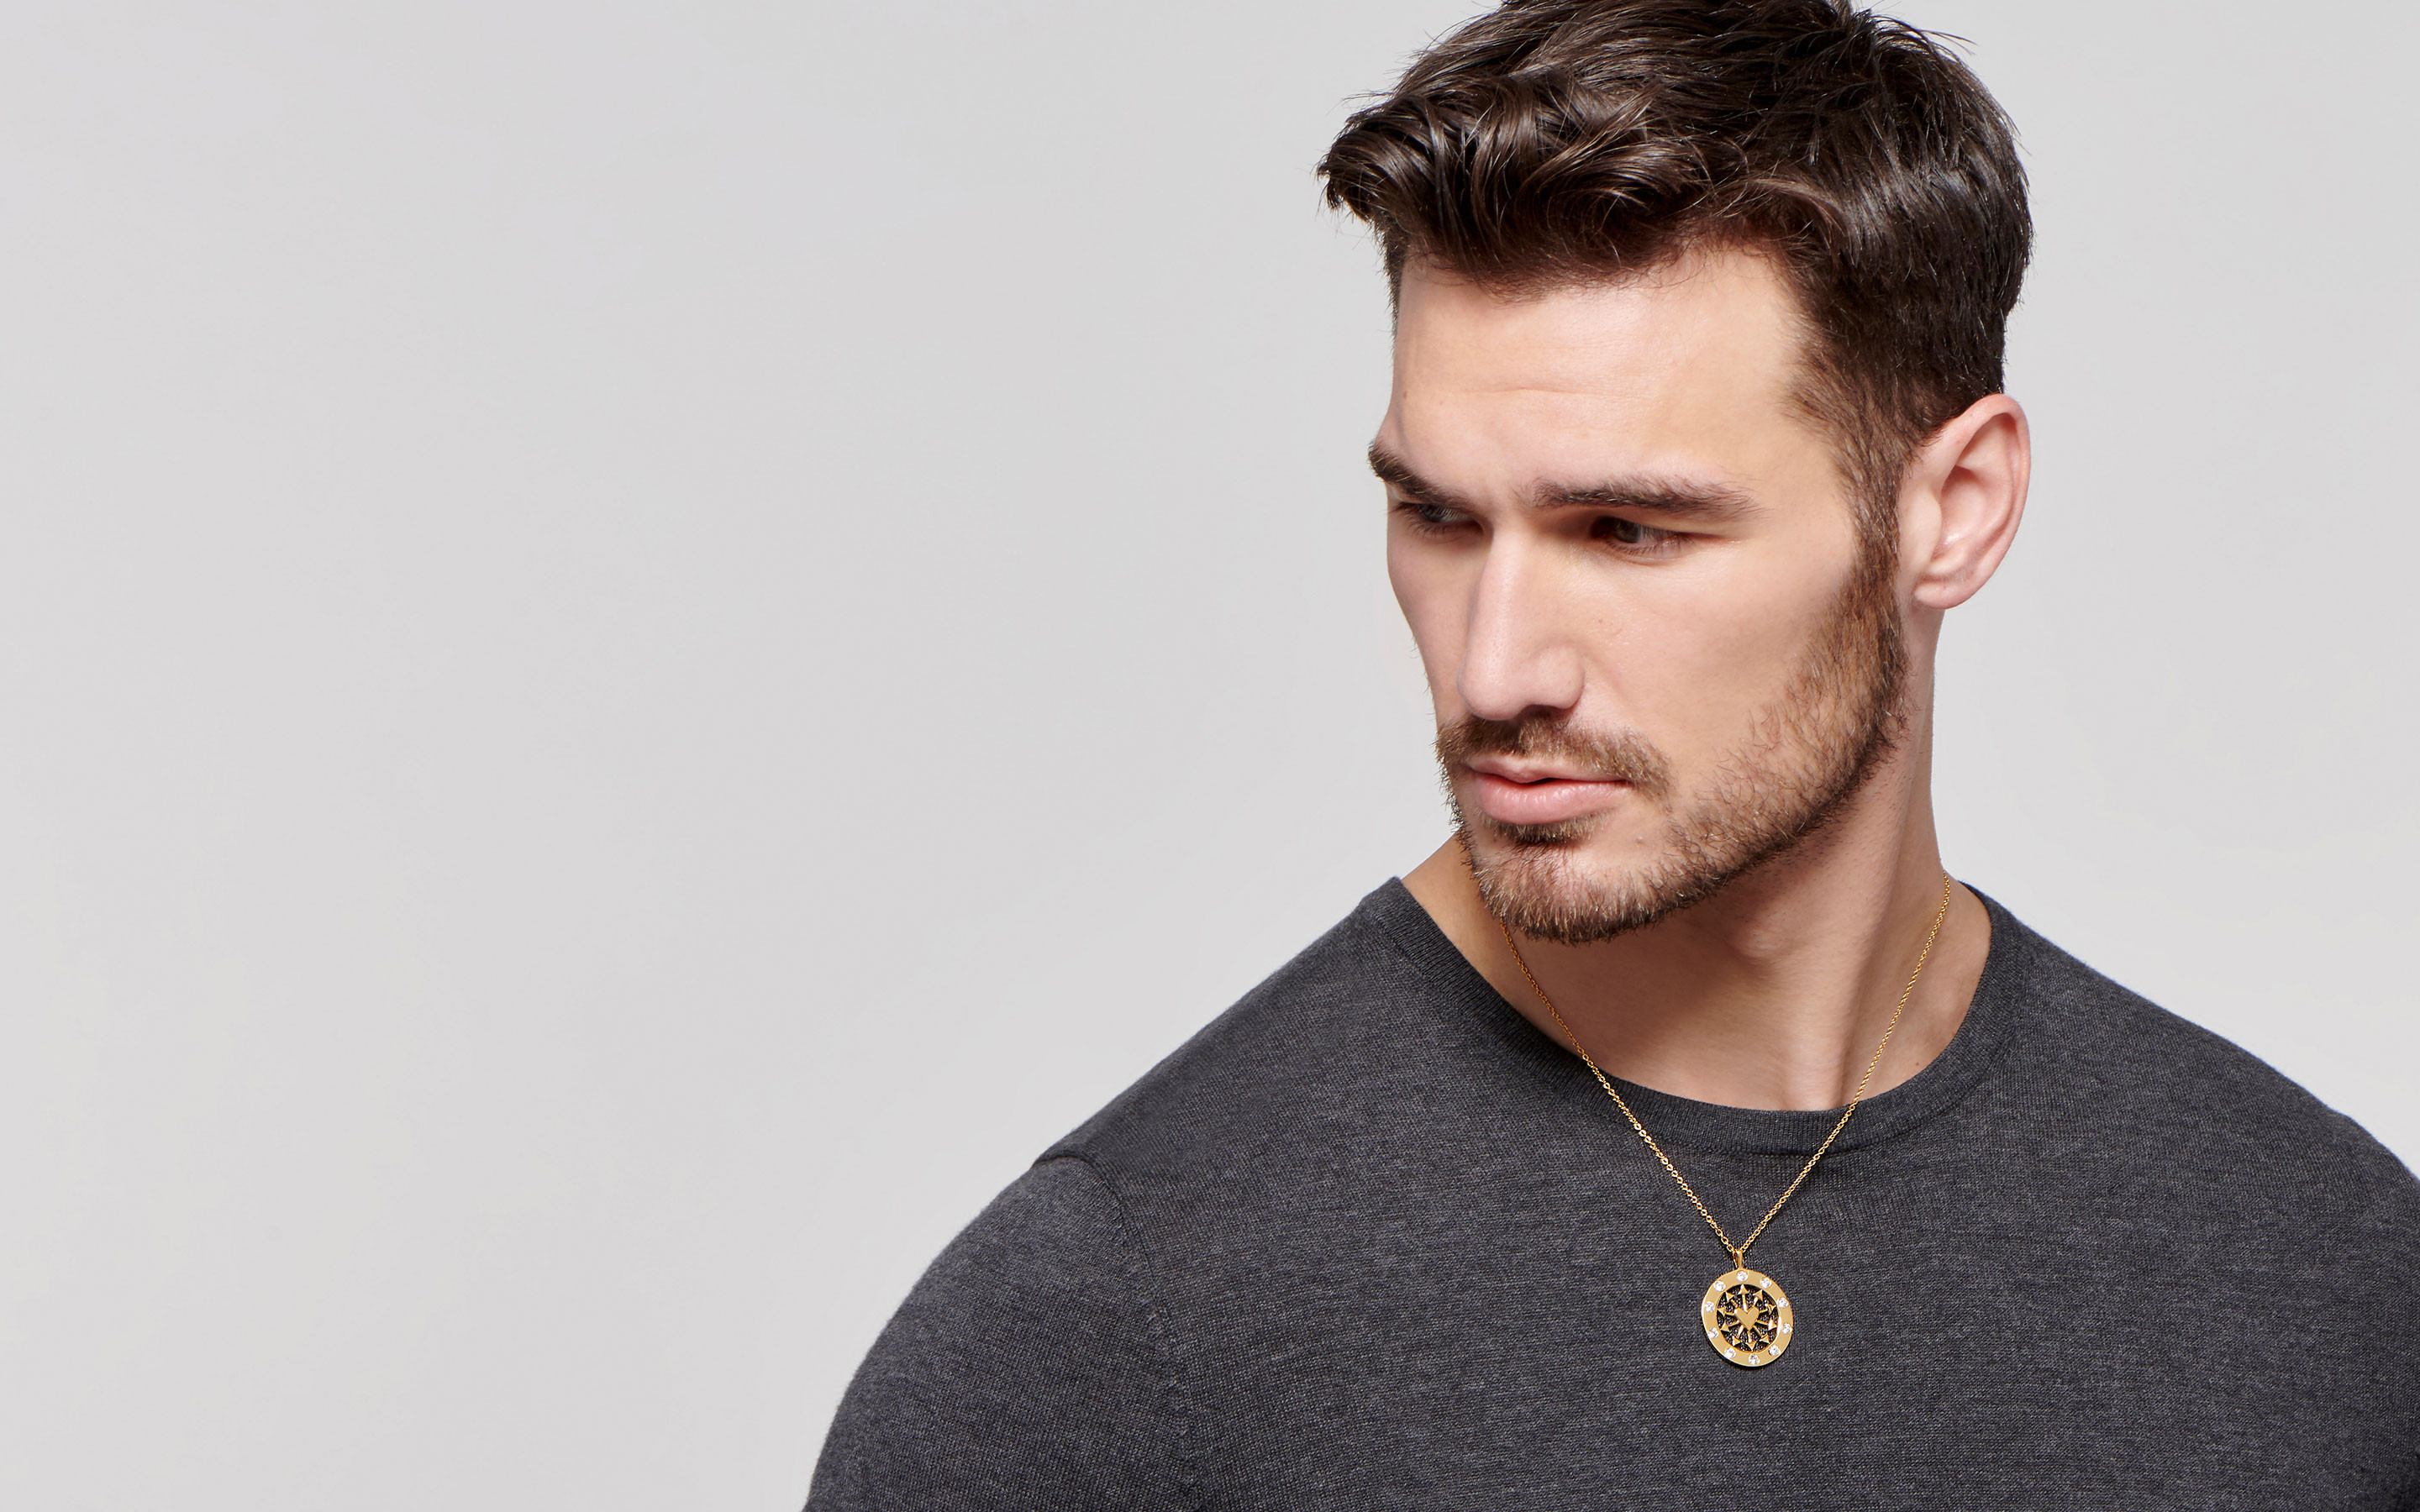 22 karat gold medallion necklace in heart and arrows shape with diamonds on dashing male model